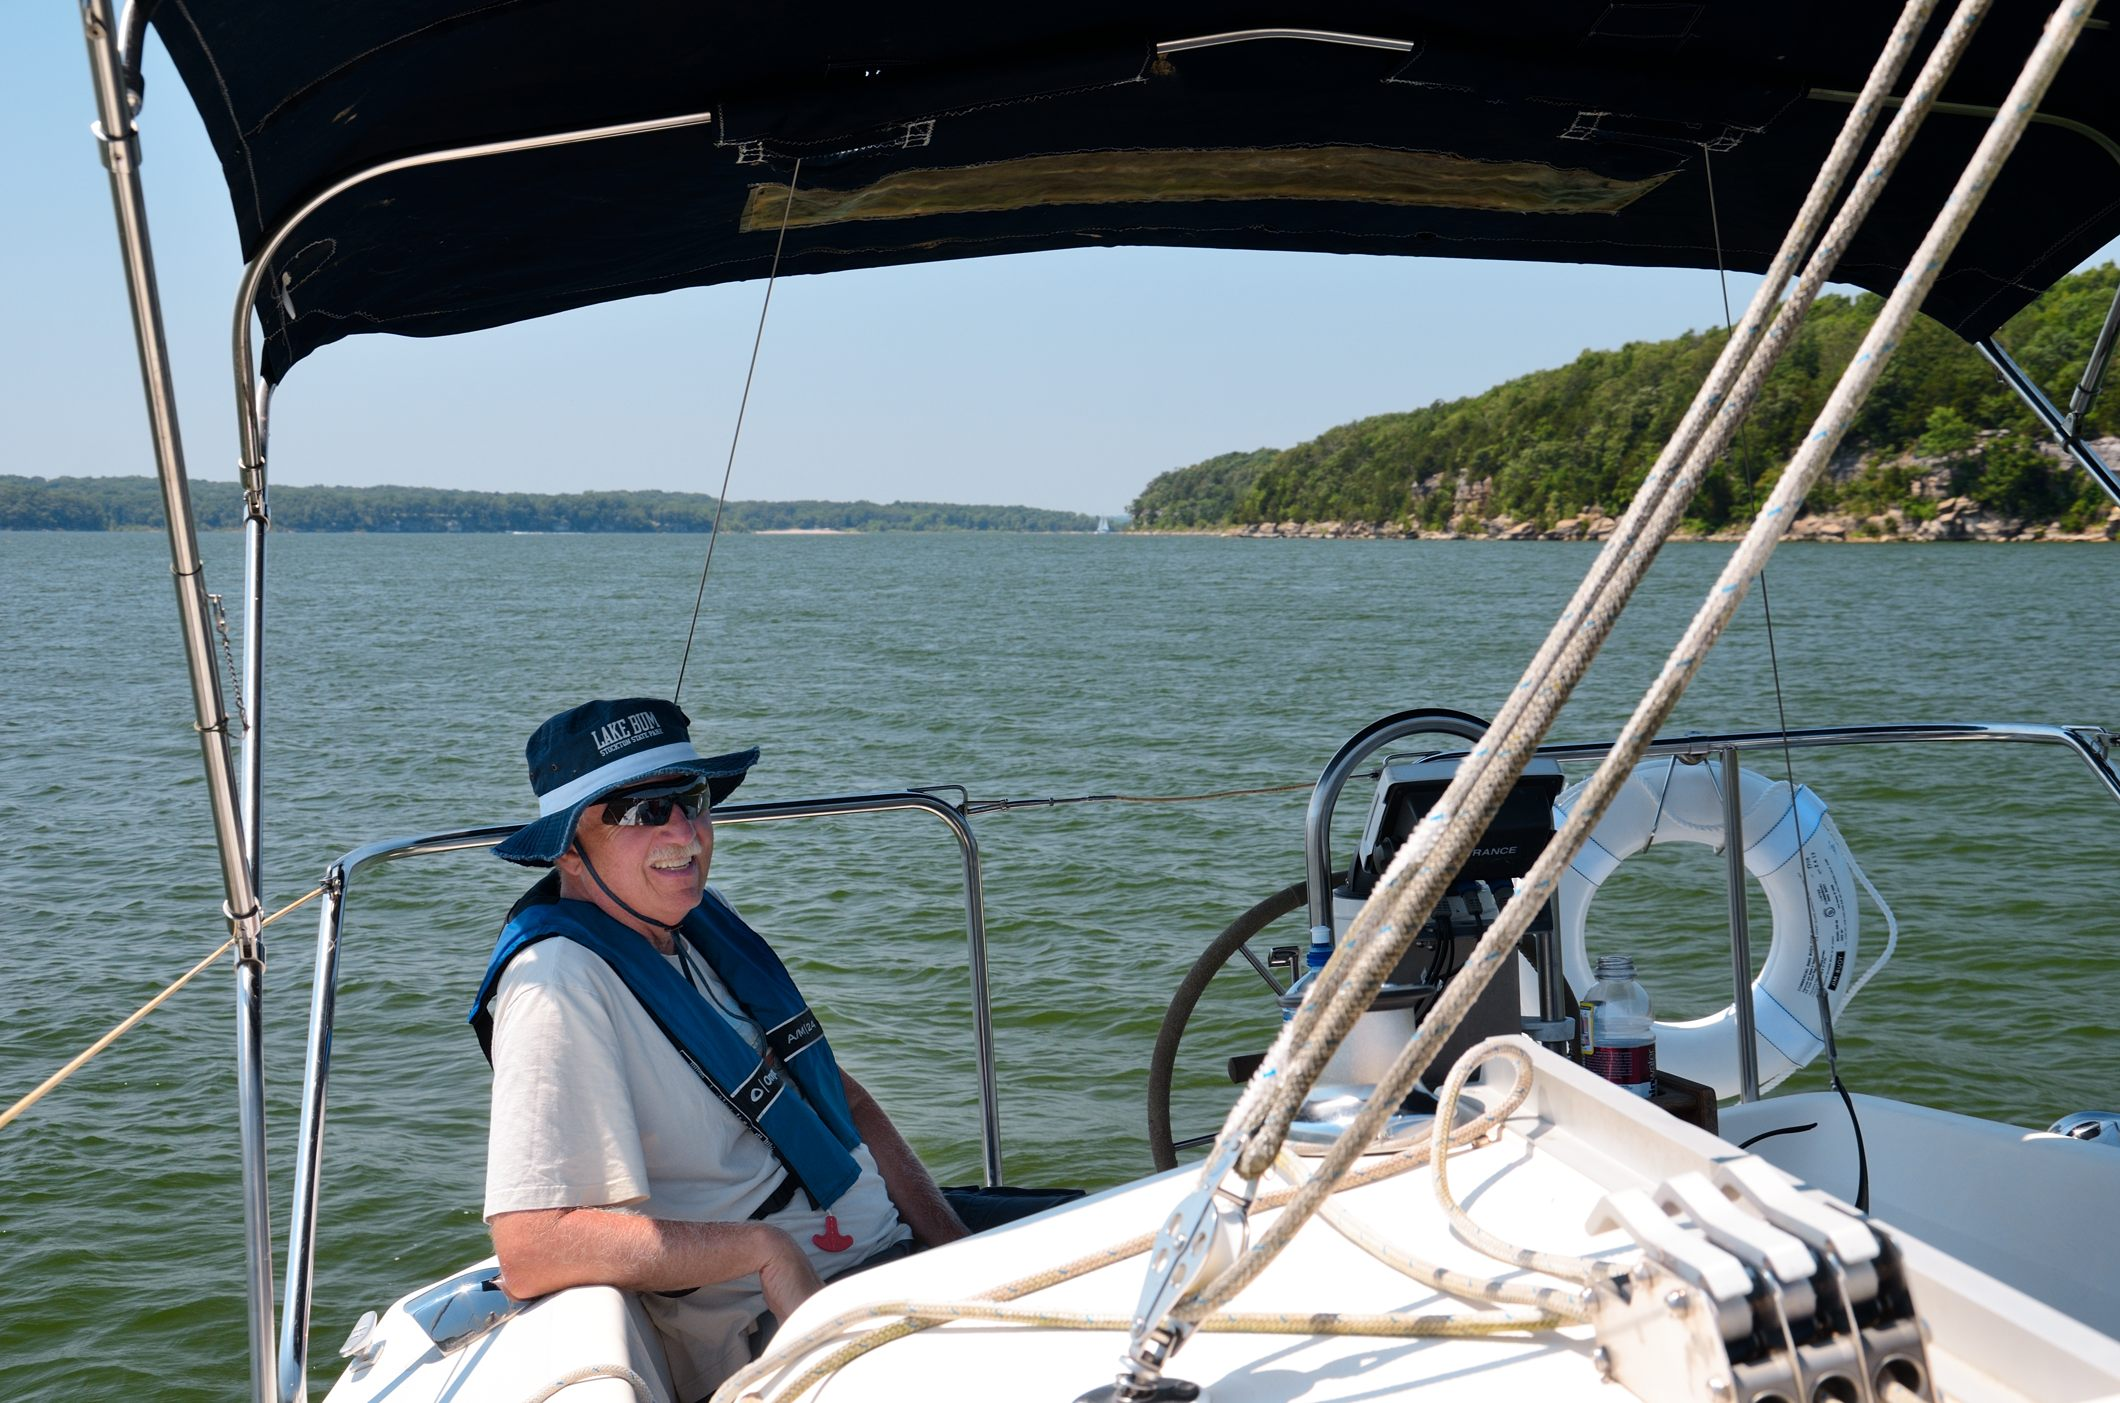 Anchored near the shore on Stockton Lake - www.ozarkswalkabout.com